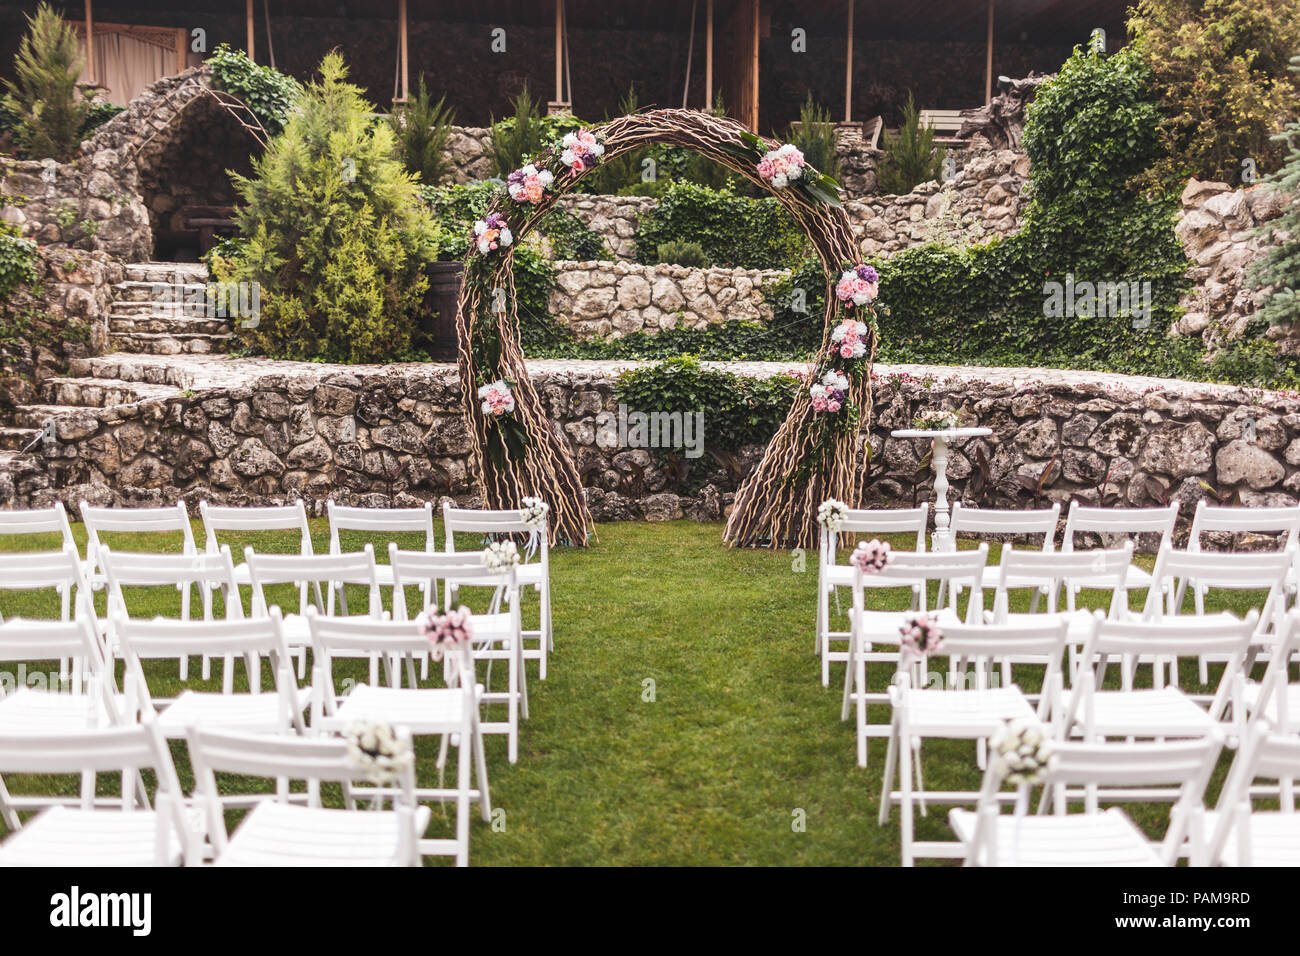 Cozy Rustic Wedding Ceremony With Flower Arch And Wooden White